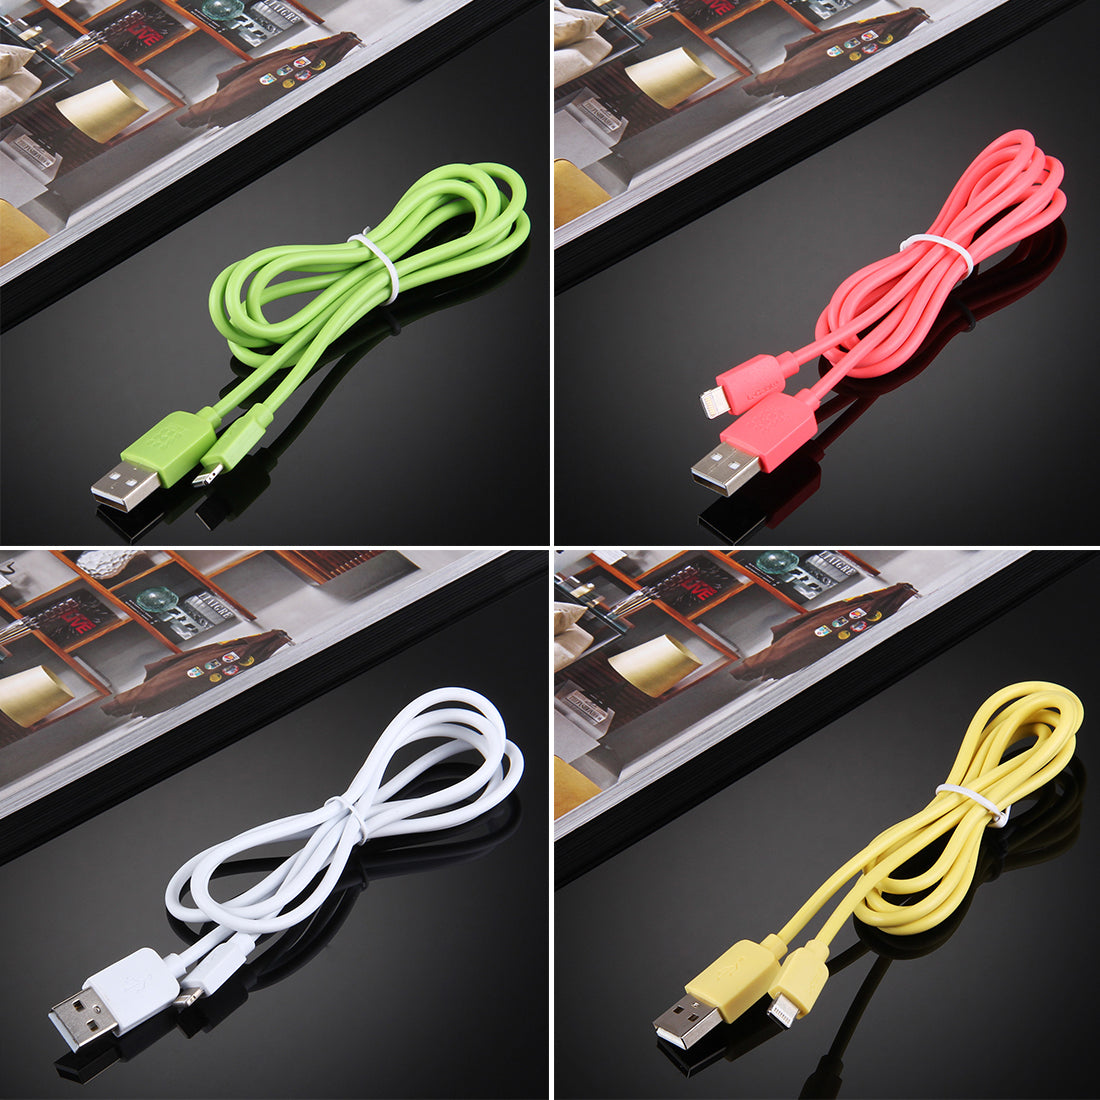 35 PCS Mixed Colors HAWEEL 1m High Speed 35 Cores 8 pin to USB Sync Charging Cable Kit with Candy Cans Package, For iPhone XR / iPhone XS MAX / iPhone X & XS / iPhone 8 & 8 Plus / iPhone 7 & 7 Plus / iPhone 6 & 6s & 6 Plus & 6s Plus / iPad